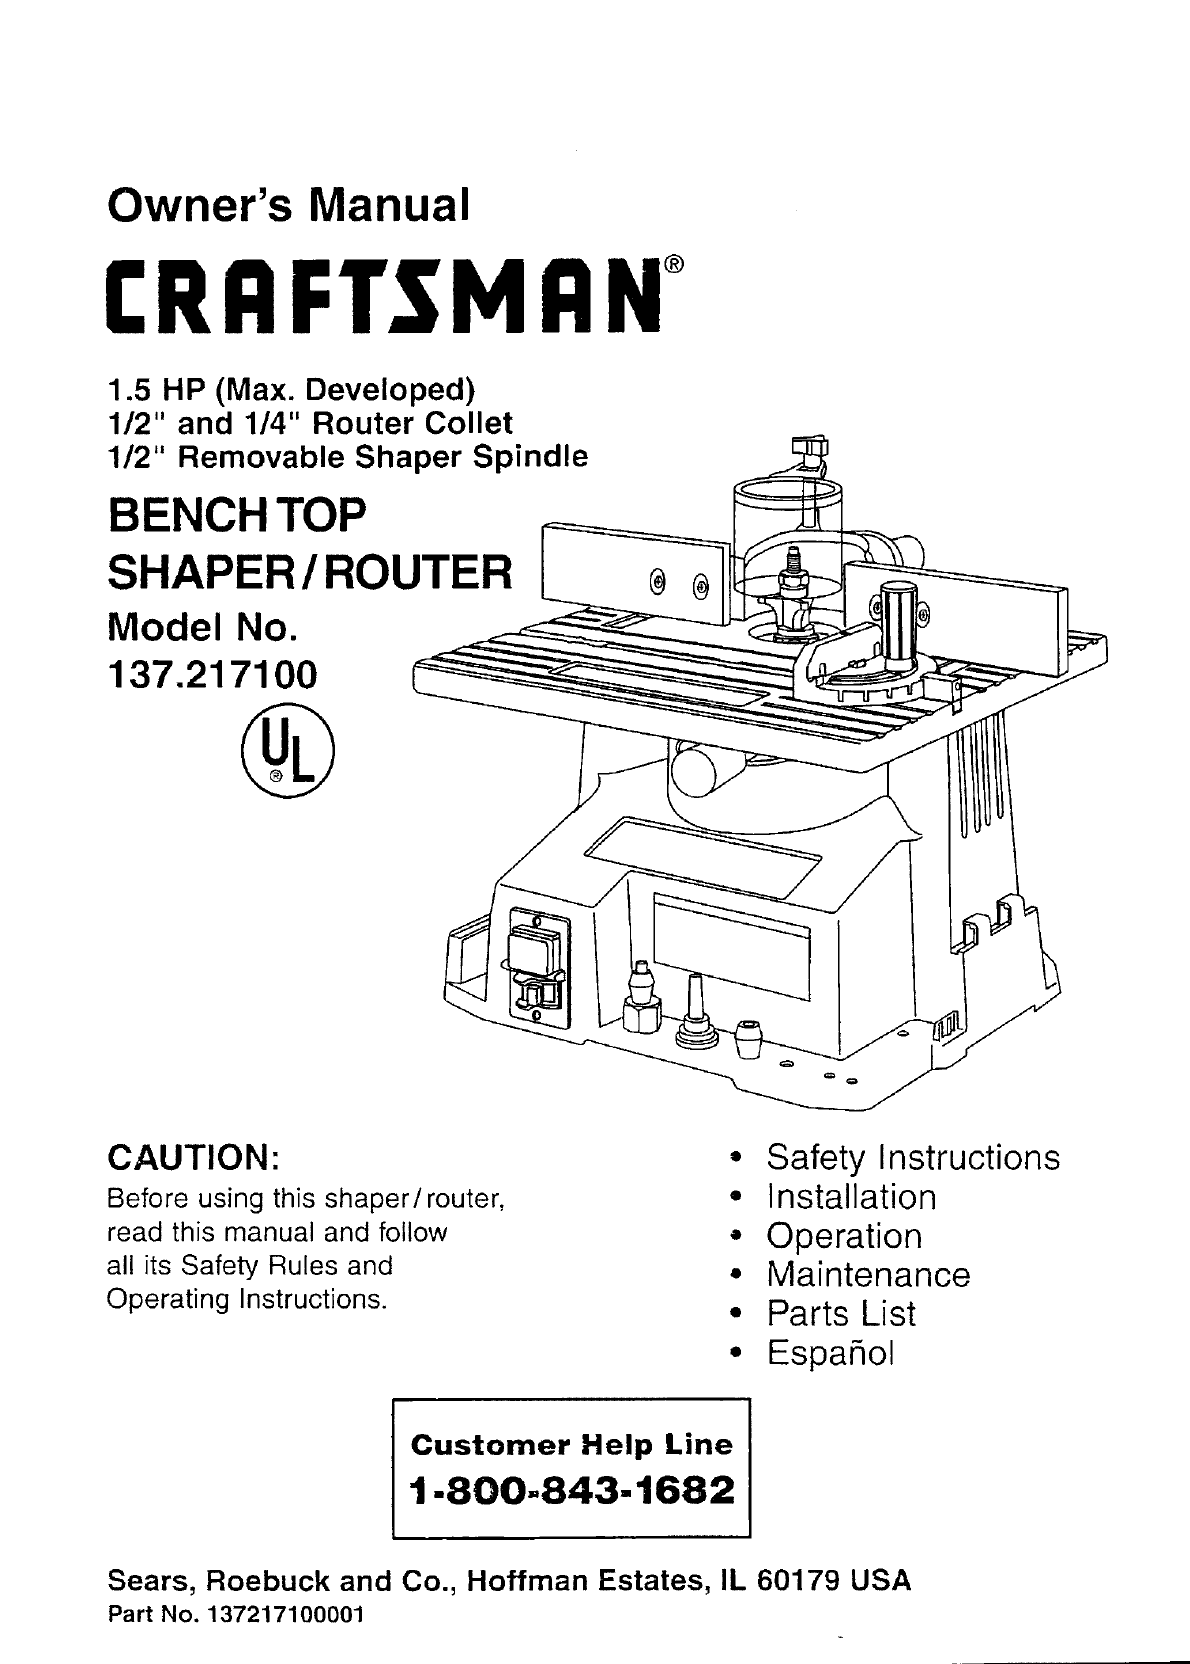 Craftsman 137217100 User Manual Shaper Router Manuals And Guides 1 4 Hp Ii Wiring Diagram L0712076